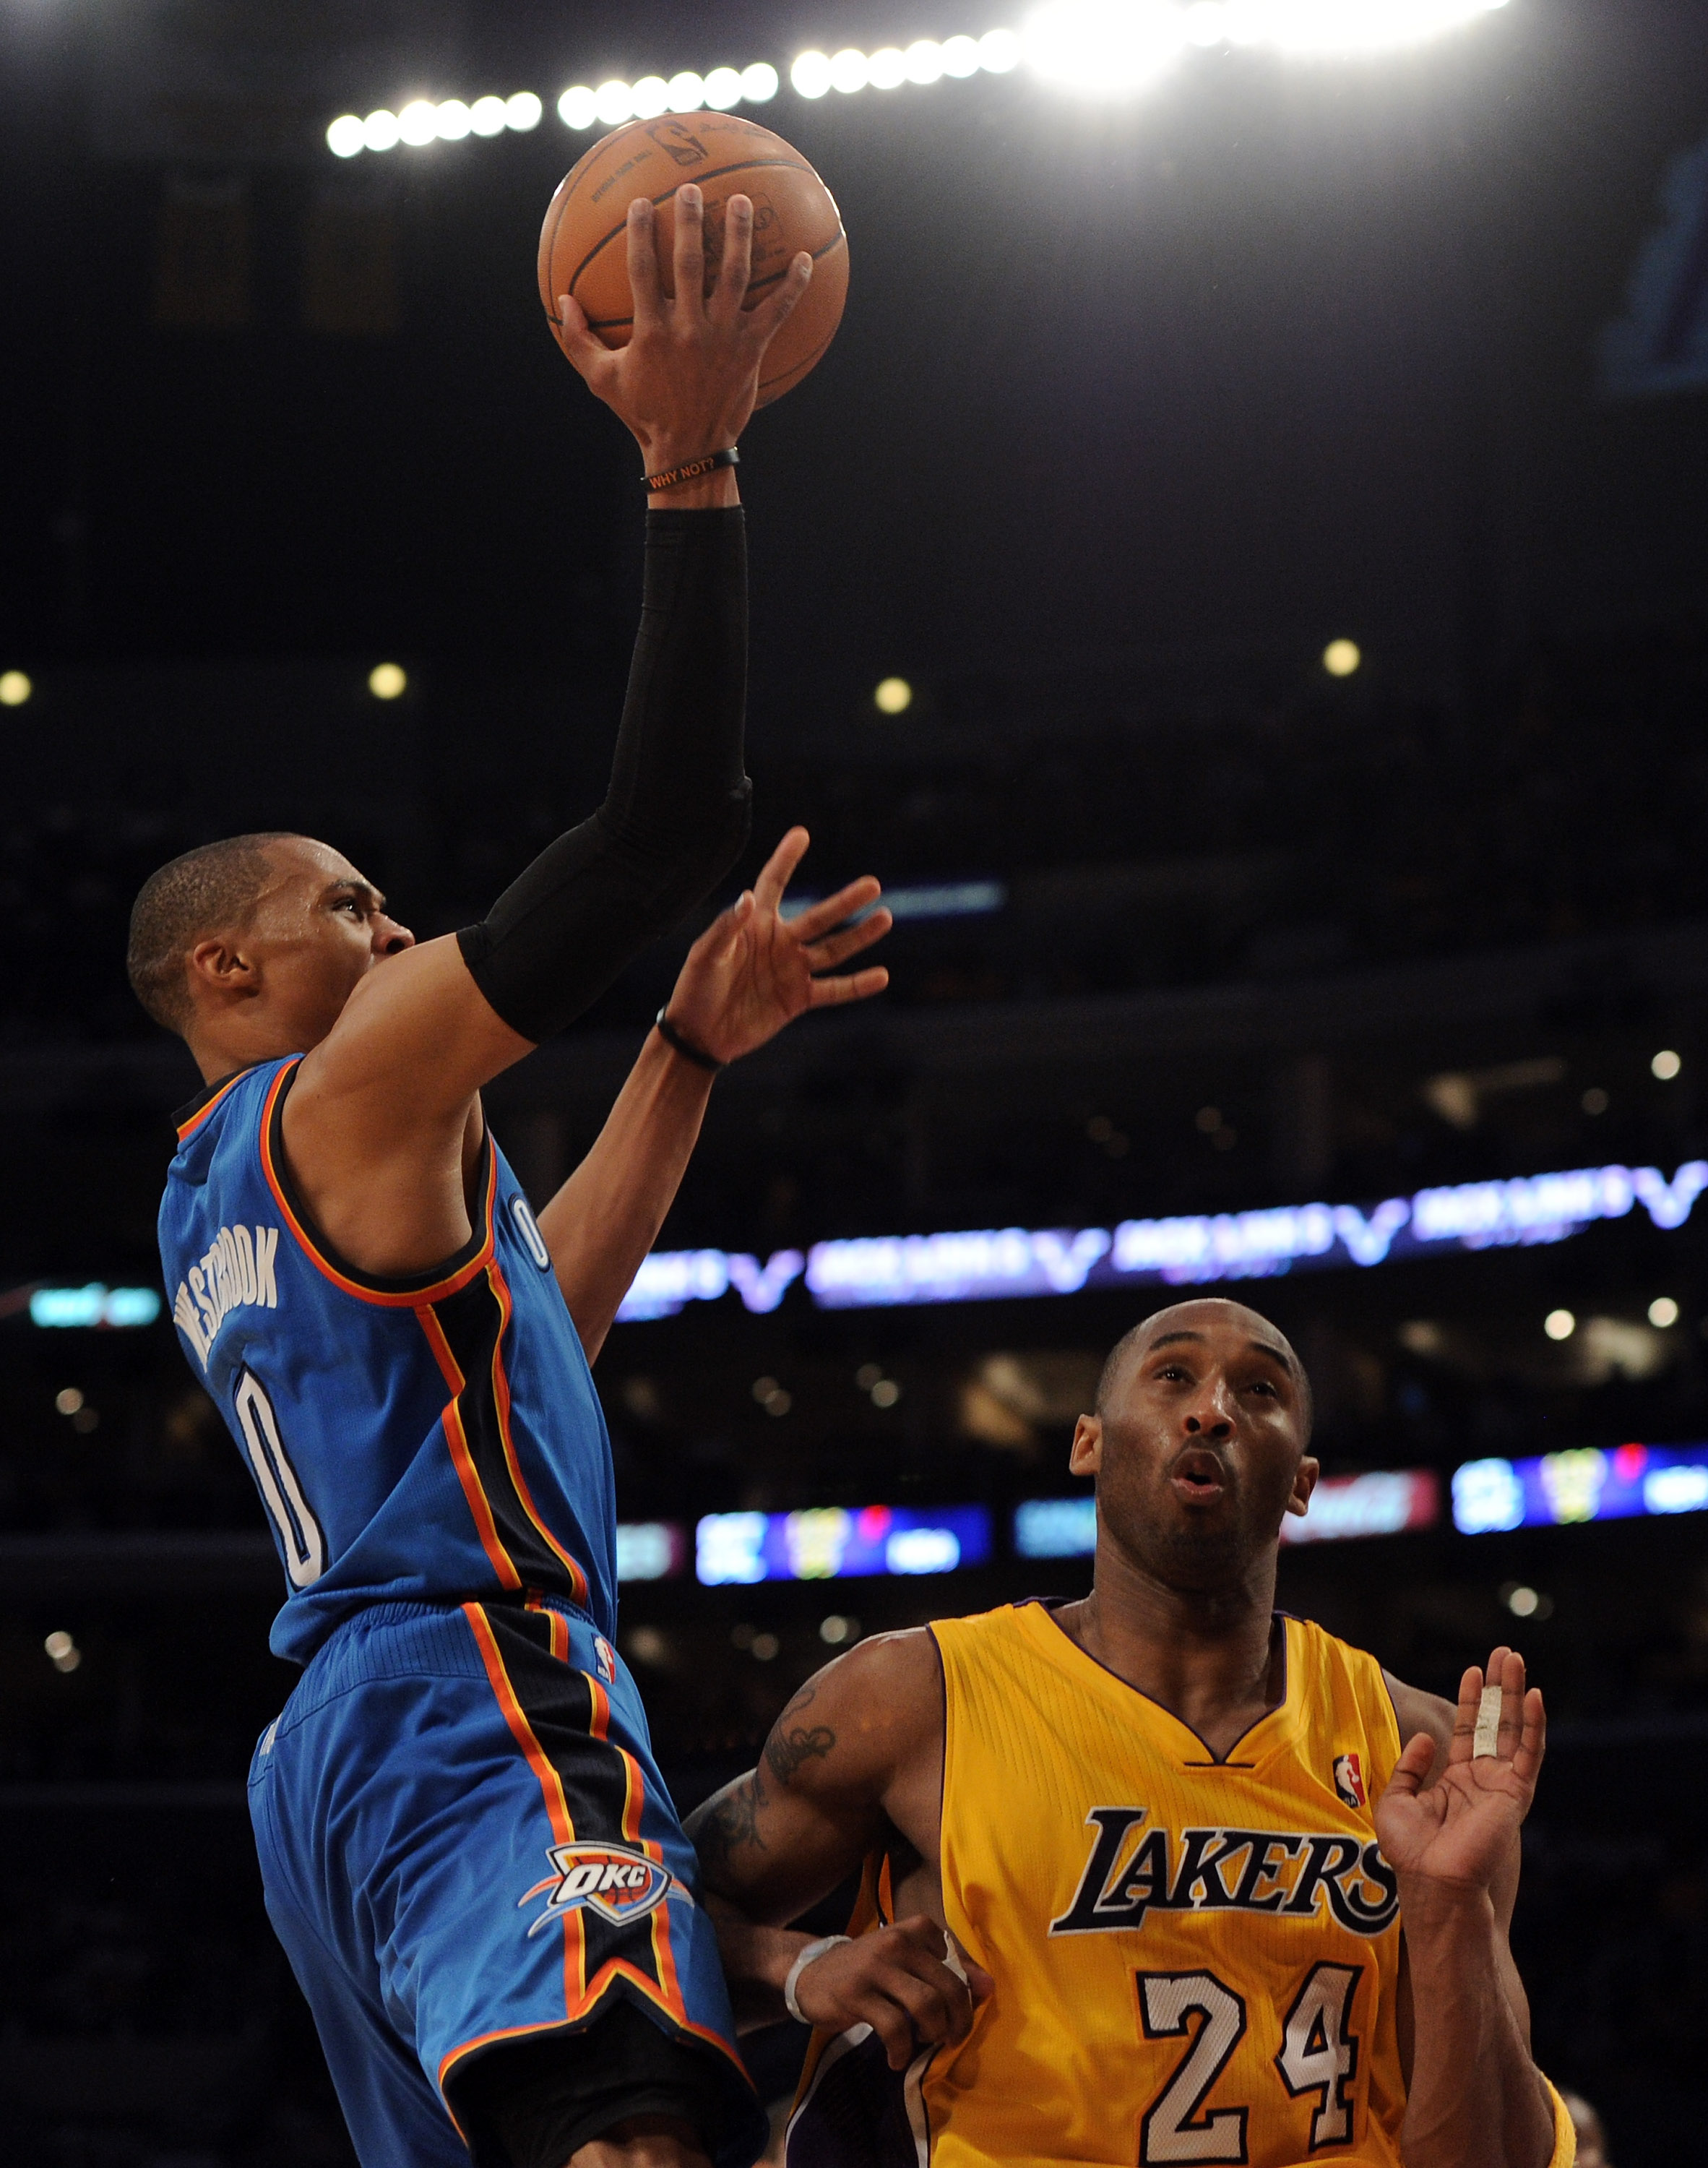 LOS ANGELES, CA - JANUARY 17:  Russell Westbrook #0 of the Oklahoma City Thunder goes in for a layup in front of Kobe Bryant #24 of the Los Angeles Lakers during a 101-94 Laker win at the Staples Center on January 17, 2011 in Los Angeles, California.   NO